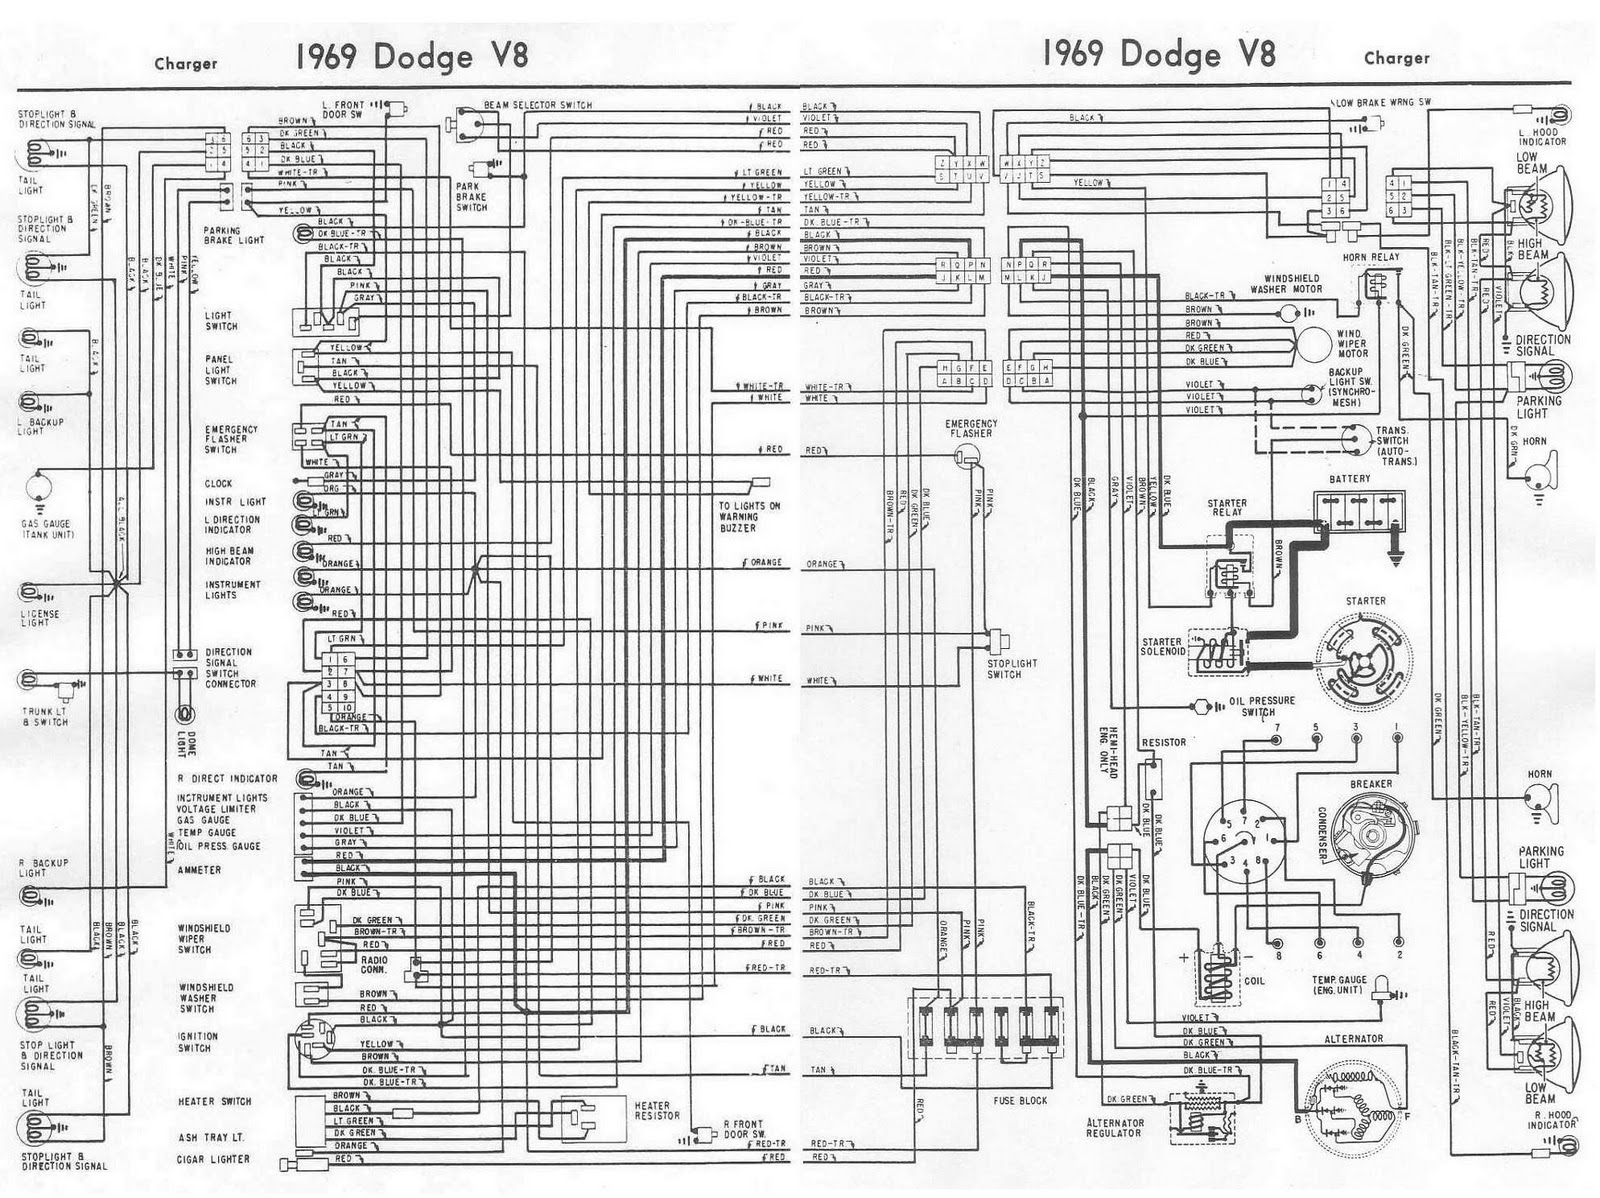 1969+Dodge+Charger+V8+Complete+Wiring+Diagram dodge charger 1969 v8 complete electrical wiring diagram all dodge wiring diagrams at crackthecode.co